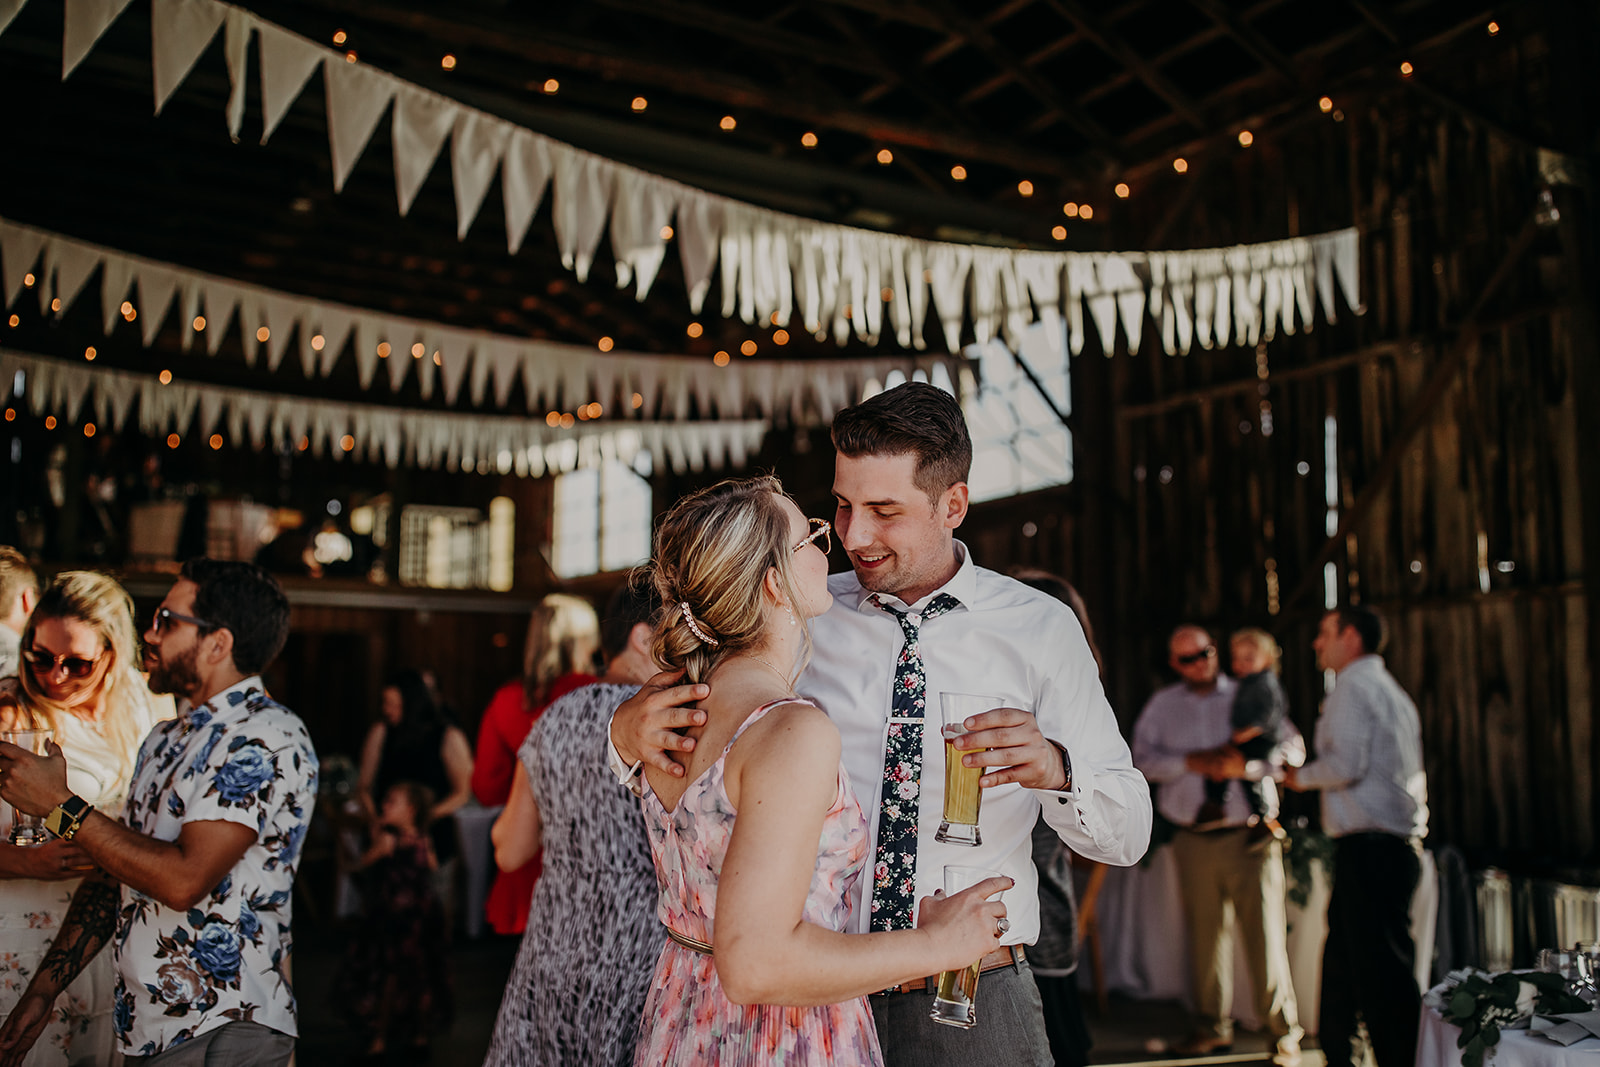 salt-box-barn-wedding-megan-gallagher-photography-4_(265_of_329).jpg